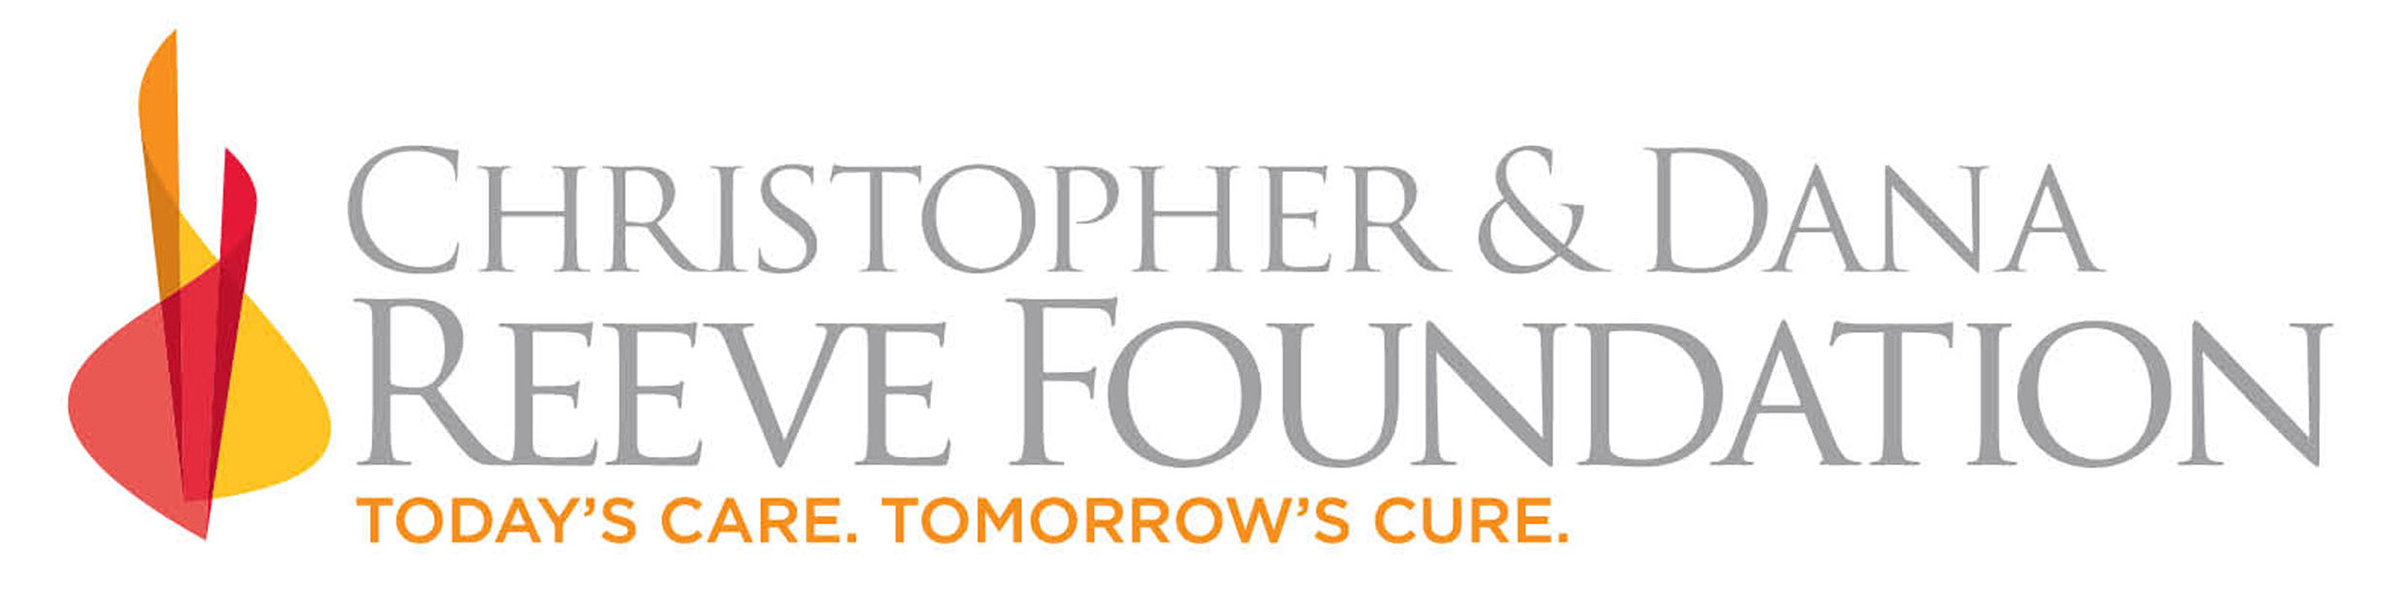 Reeve Foundation logo